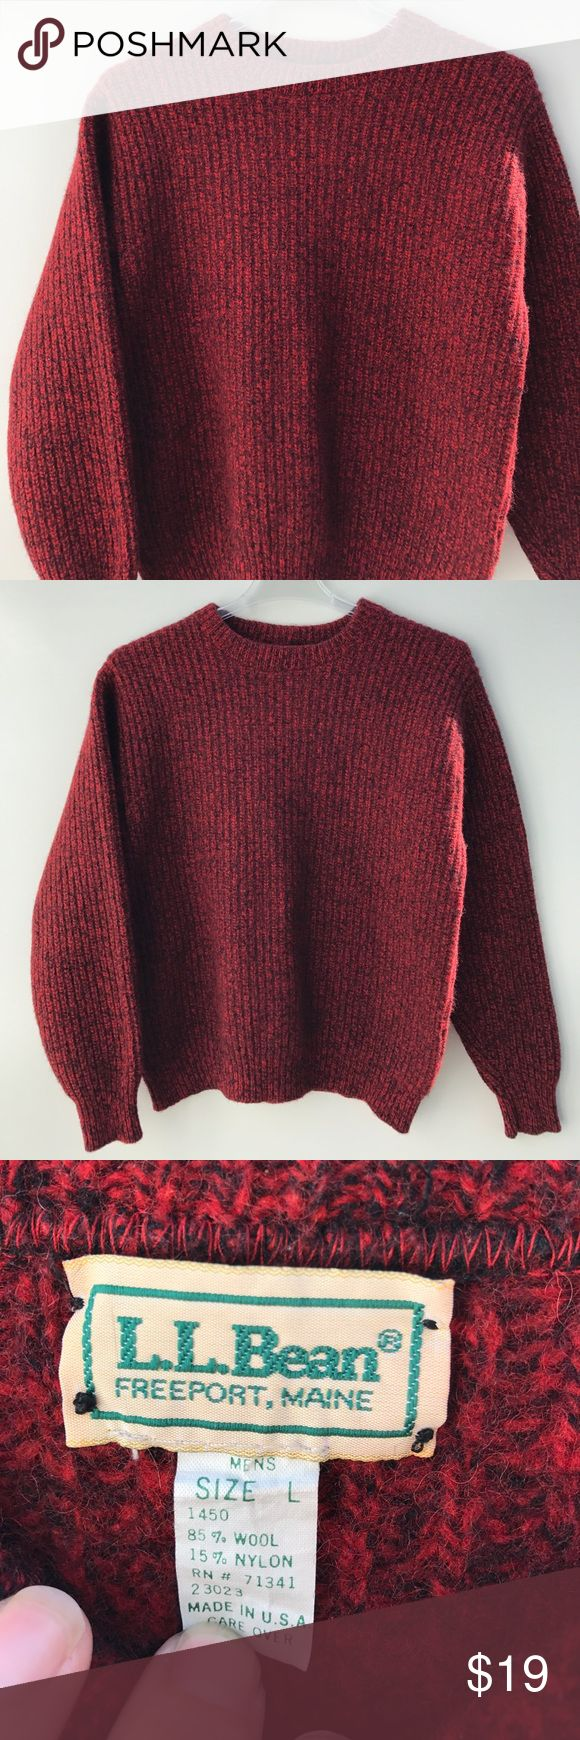 "L. L. Bean Wool Sweater Men's Wool sweater size Large. 85% wool, 15% nylon. This has been worn but is in nice shape! Shoulder to hem: 26"", inner sleeve: 21"", pit to pit: 23"". This could be worn by a man or woman but it says men on the tag. L.L. Bean Sweaters Crewneck"